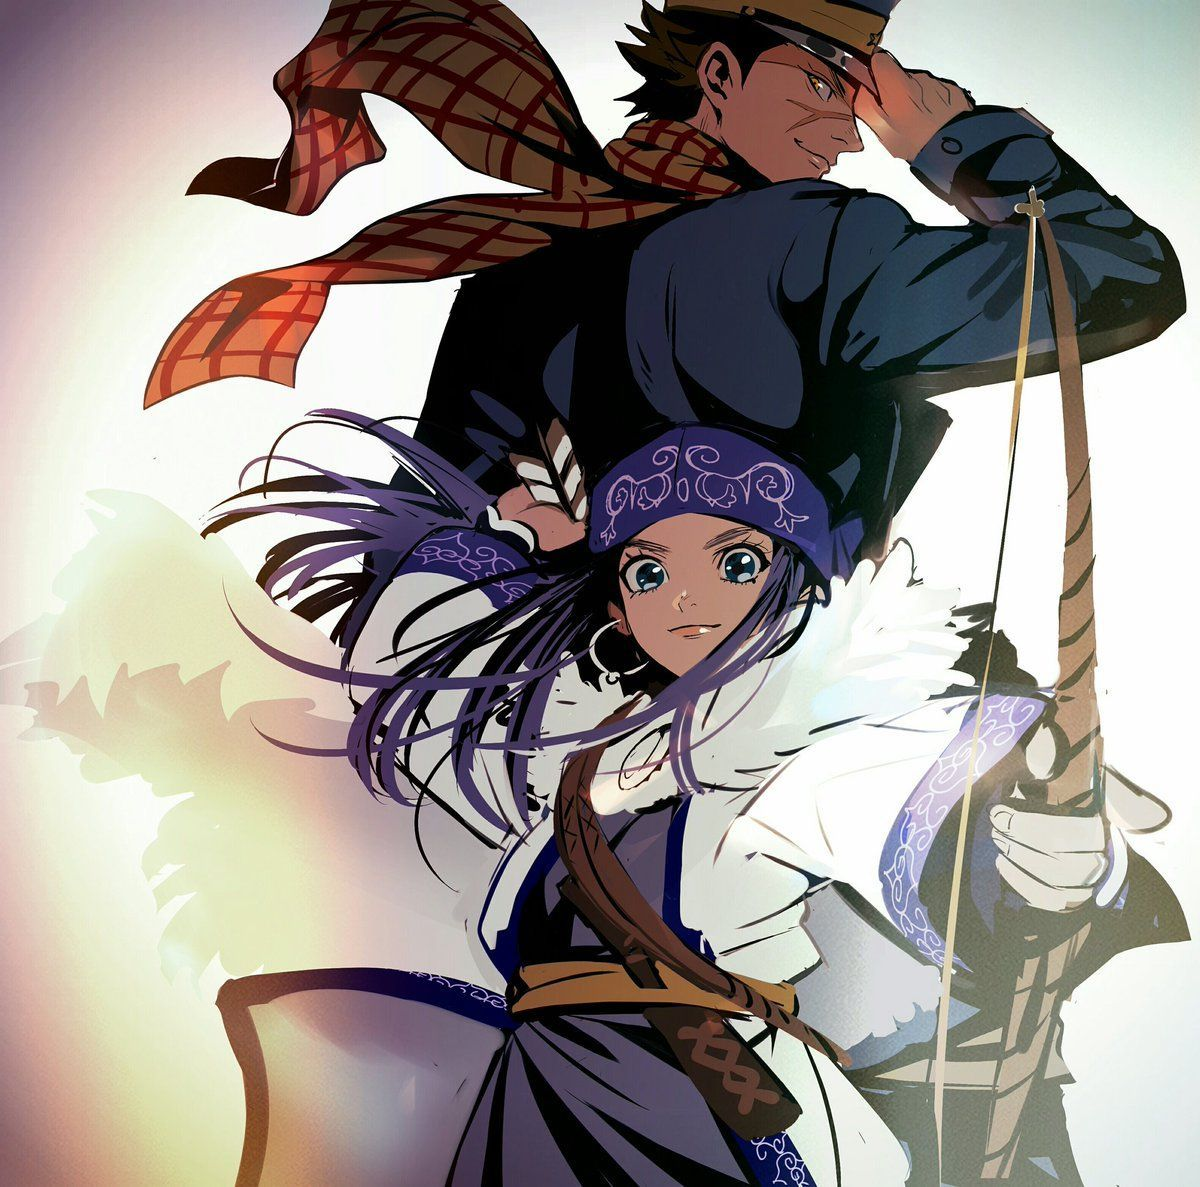 Check out the reviews and reviews anime at